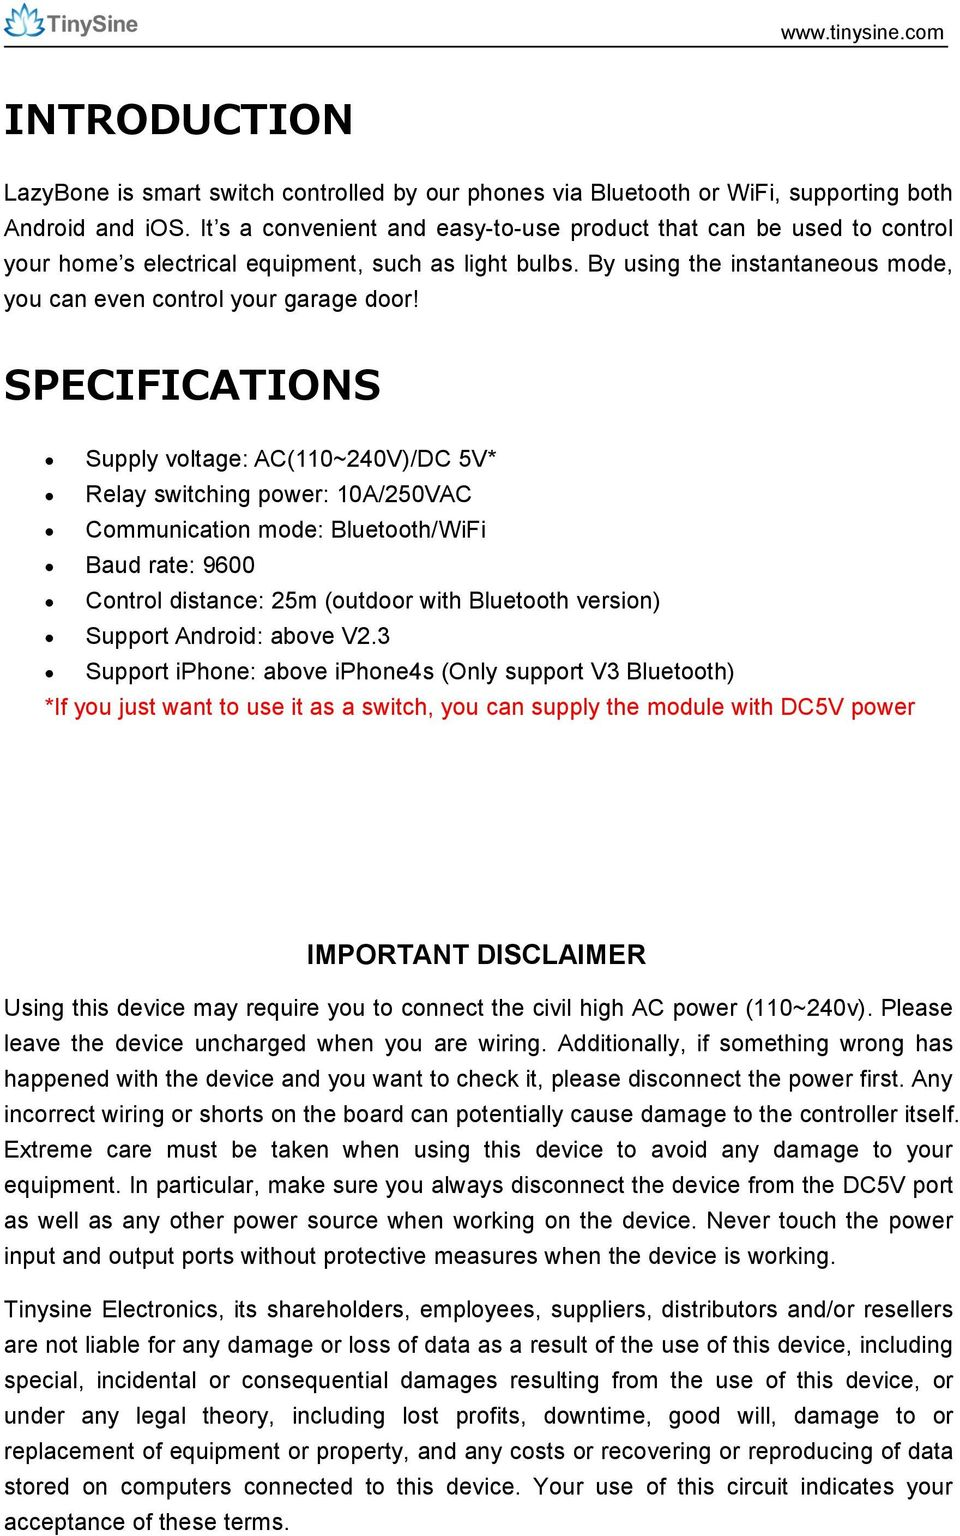 Tosr 04 5 10b C Lazybone Smartphone Controlled Switch User Relay Android Specifications Supply Voltage Ac110240v Dc 5v Switching